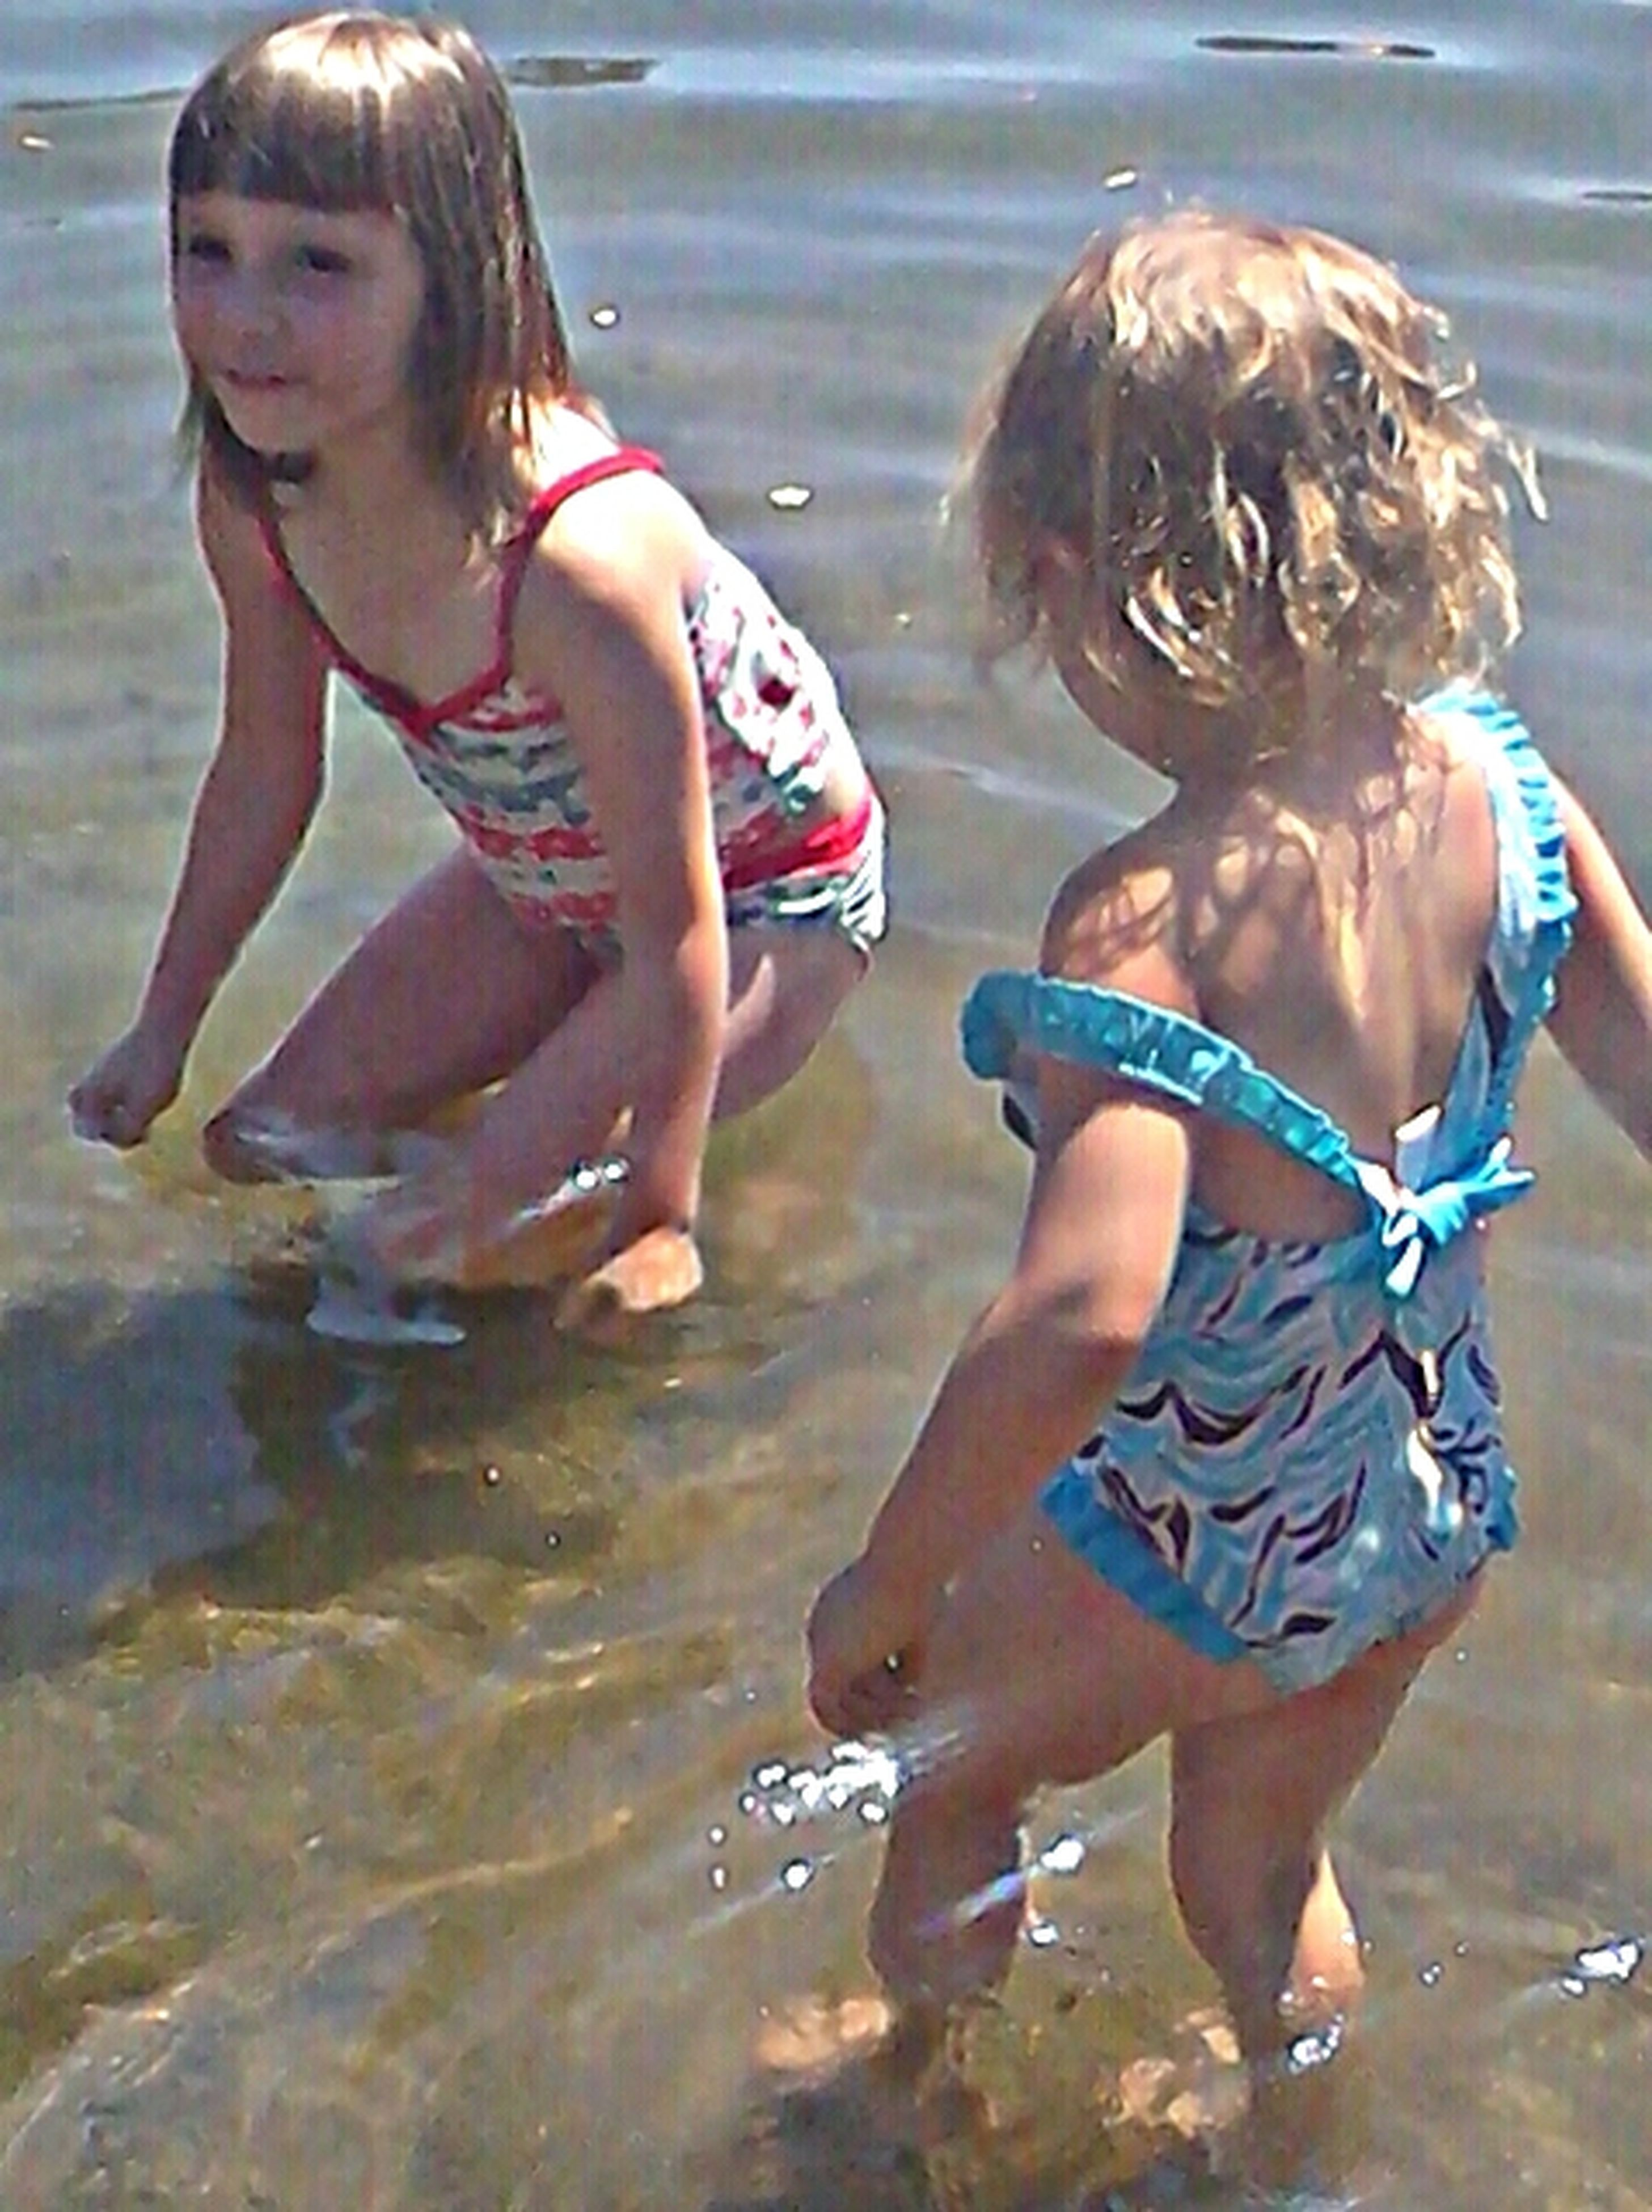 water, leisure activity, childhood, lifestyles, togetherness, person, enjoyment, fun, elementary age, girls, playful, full length, happiness, boys, bonding, beach, vacations